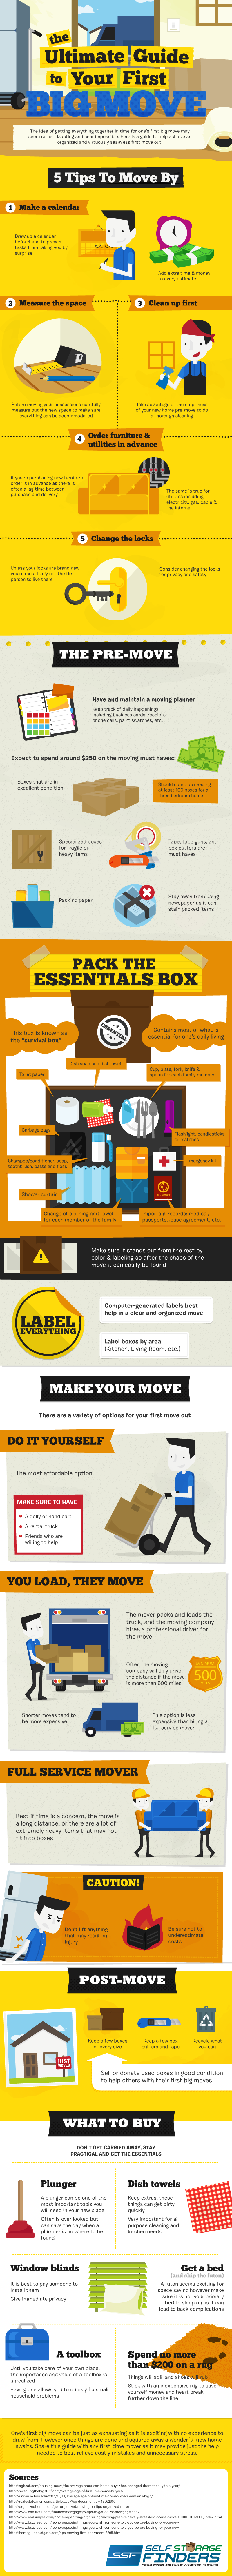 06 the-ultimate-guide-to-your-first-big-move-infographic